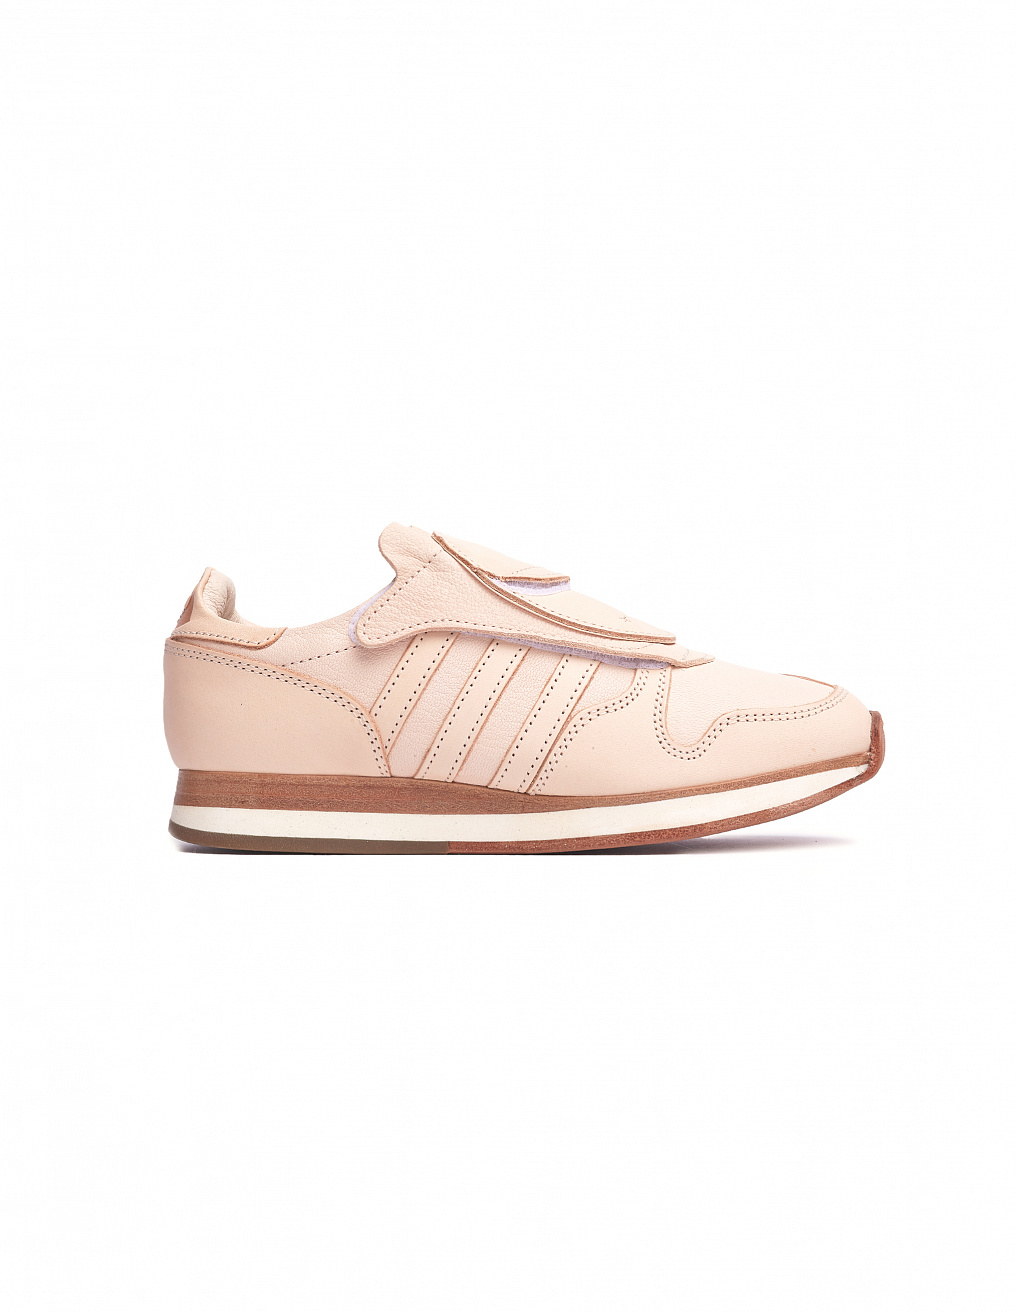 Adidas Micropacer Leather Sneakers Hender Scheme - buy